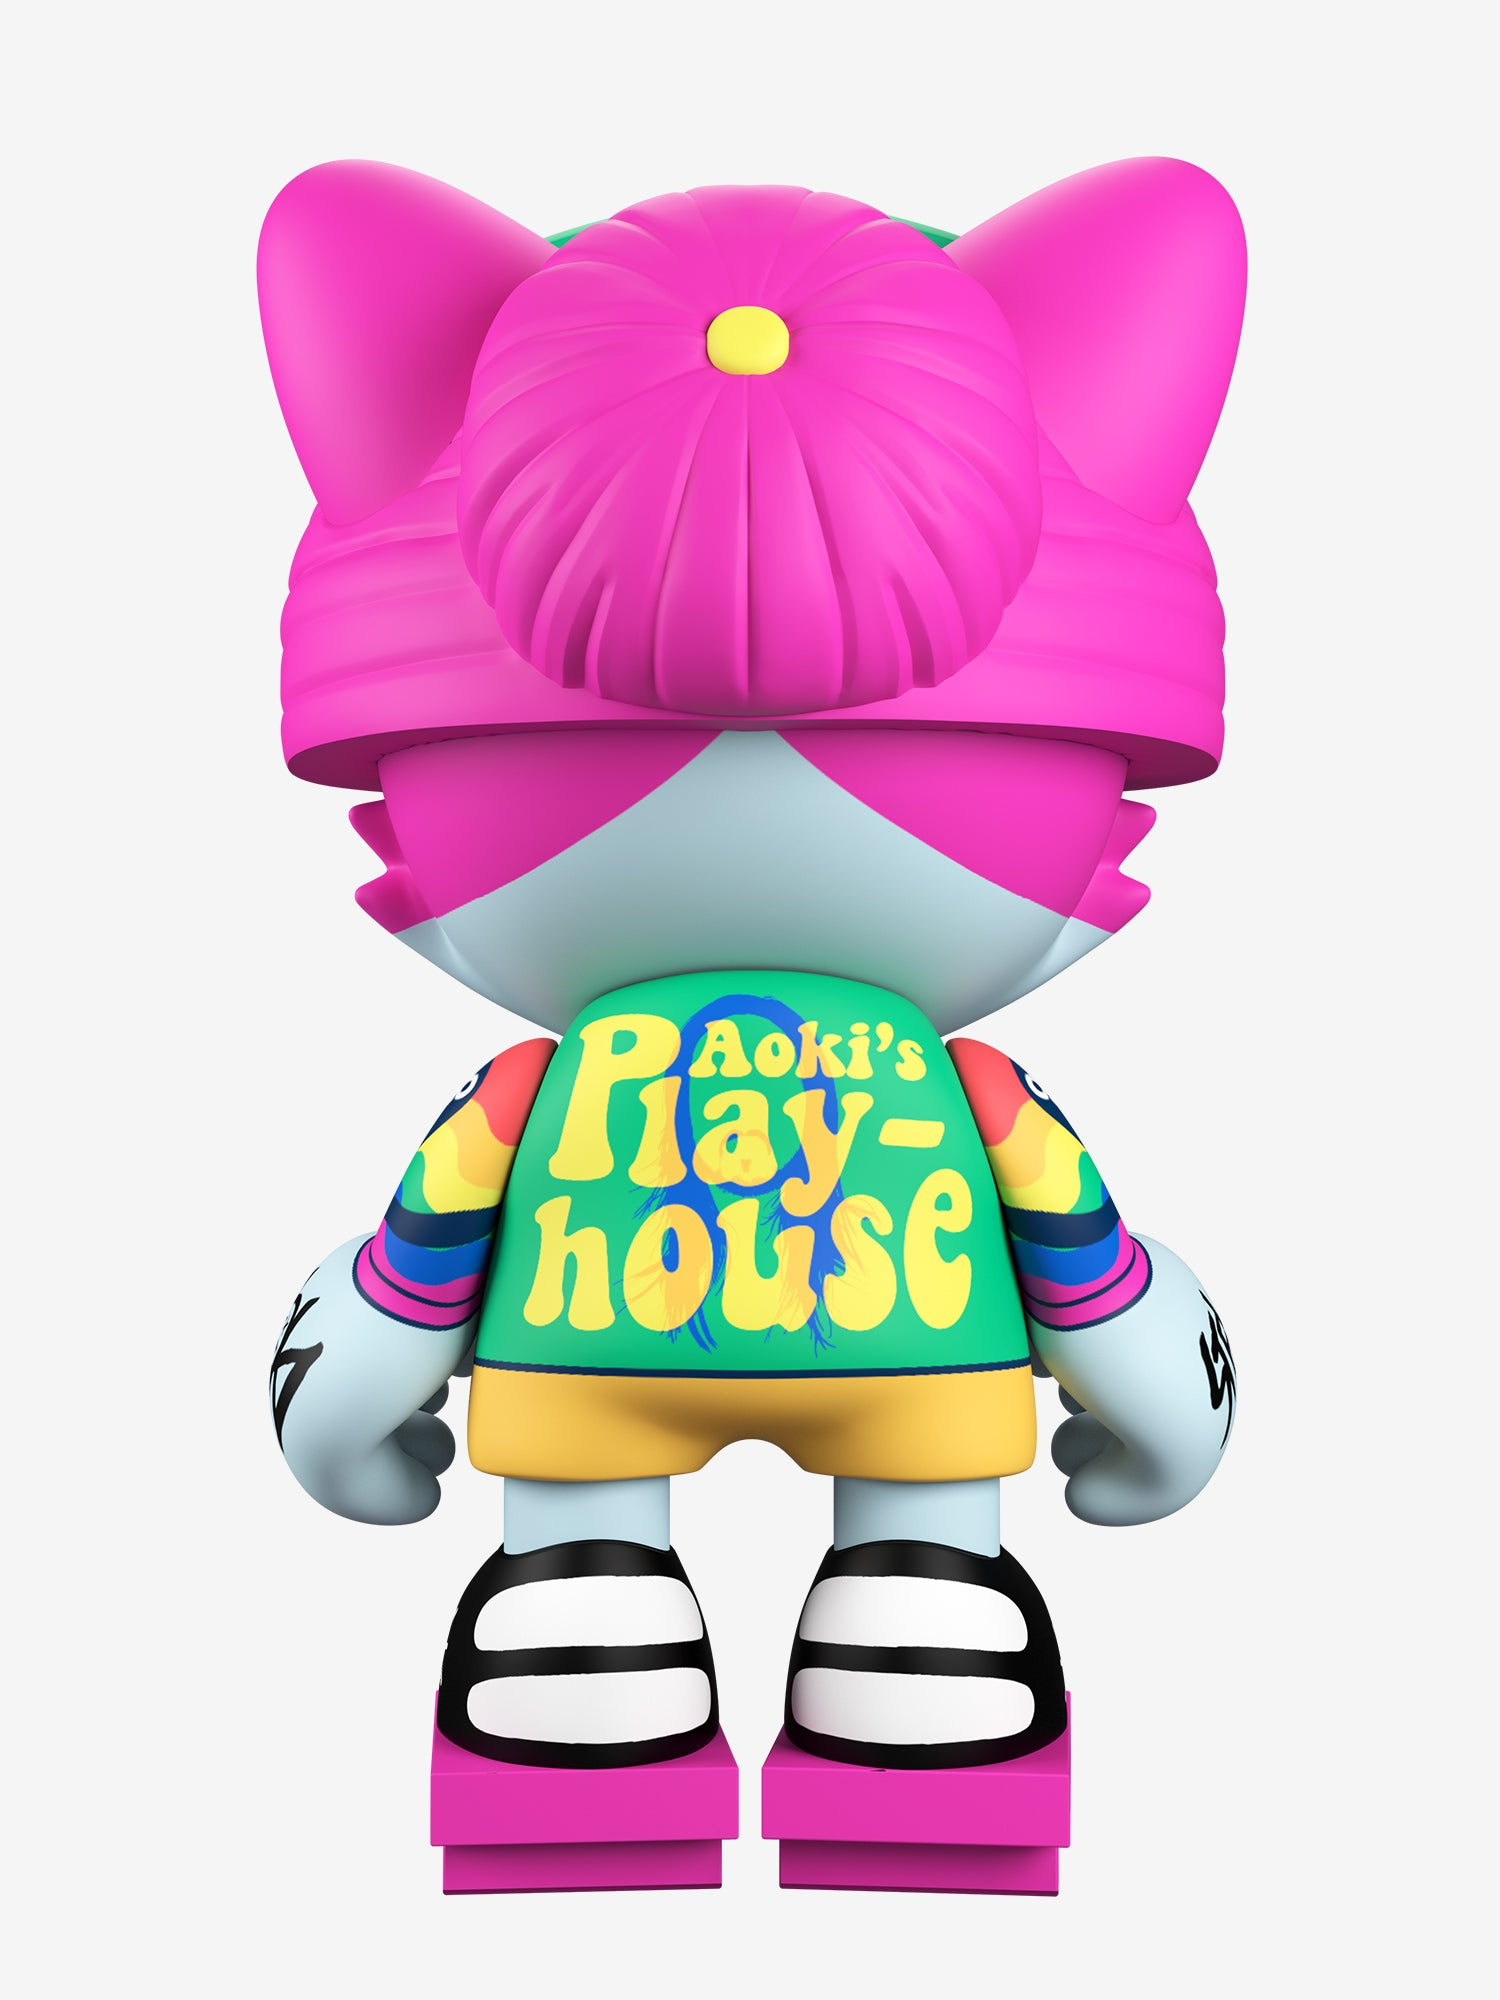 Superplastic x Steve Aoki Playhouse Janky [Ships Fall 2020]